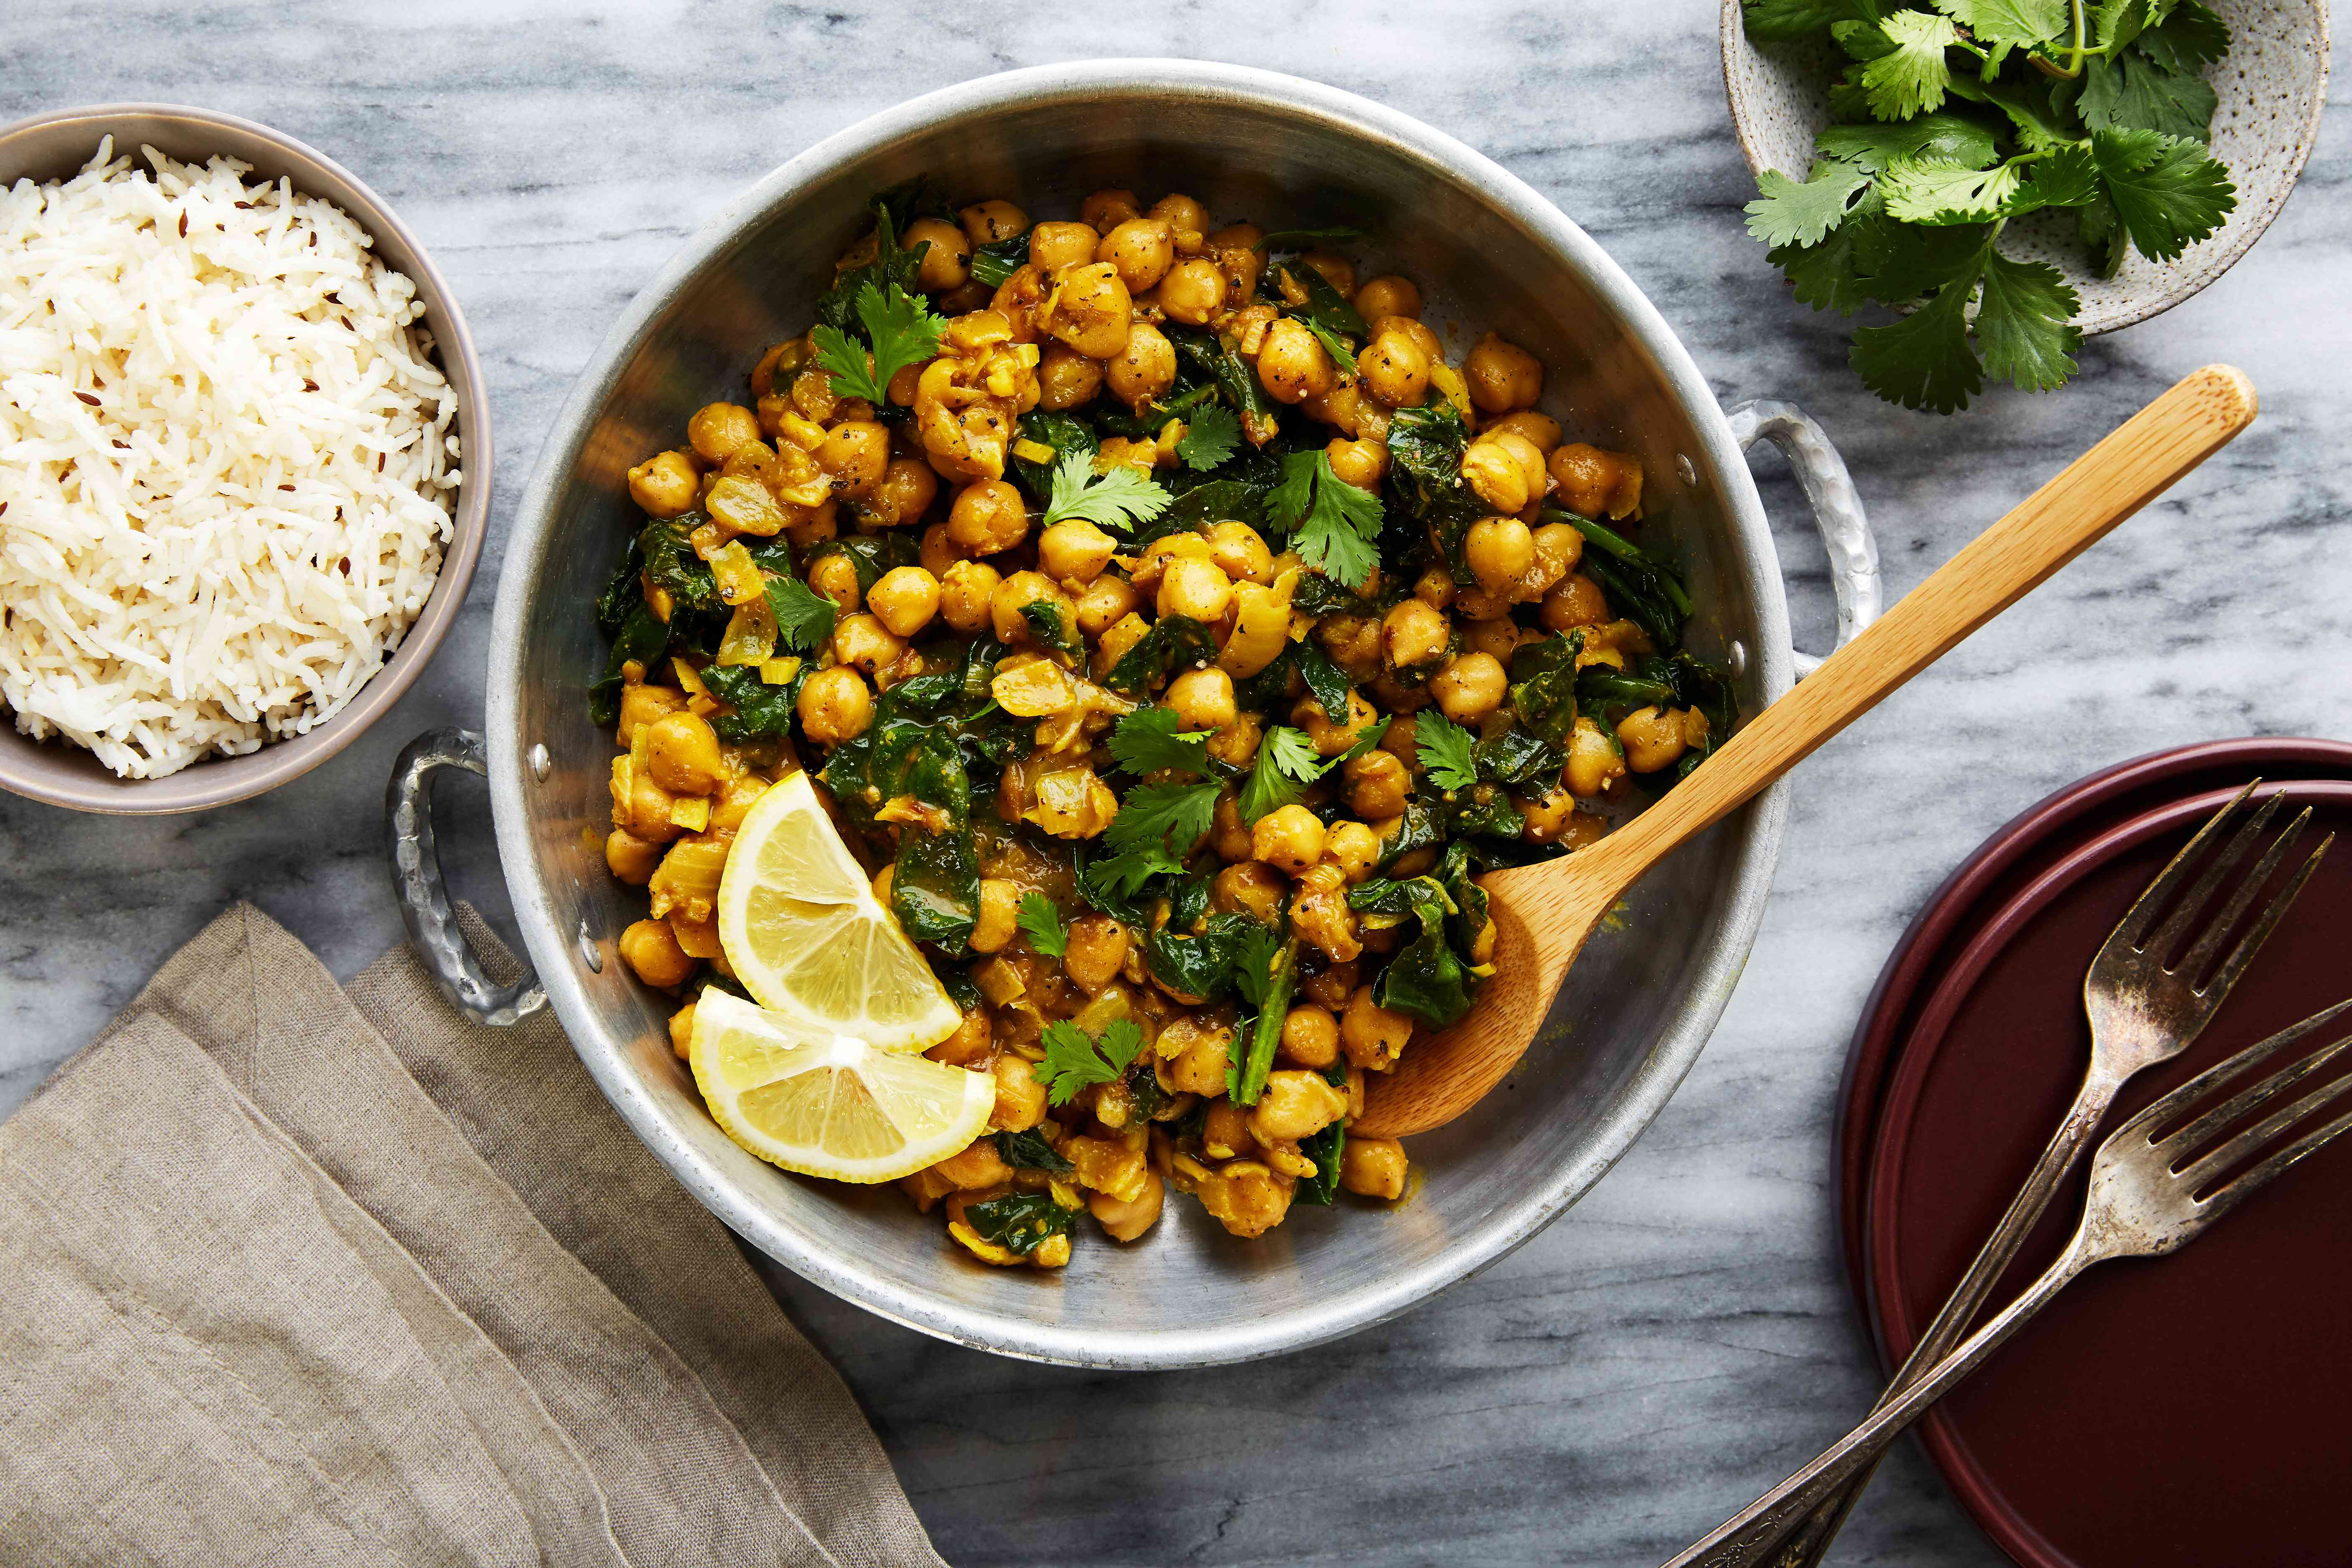 Chana masala spicy chickpeas with spinach recipe